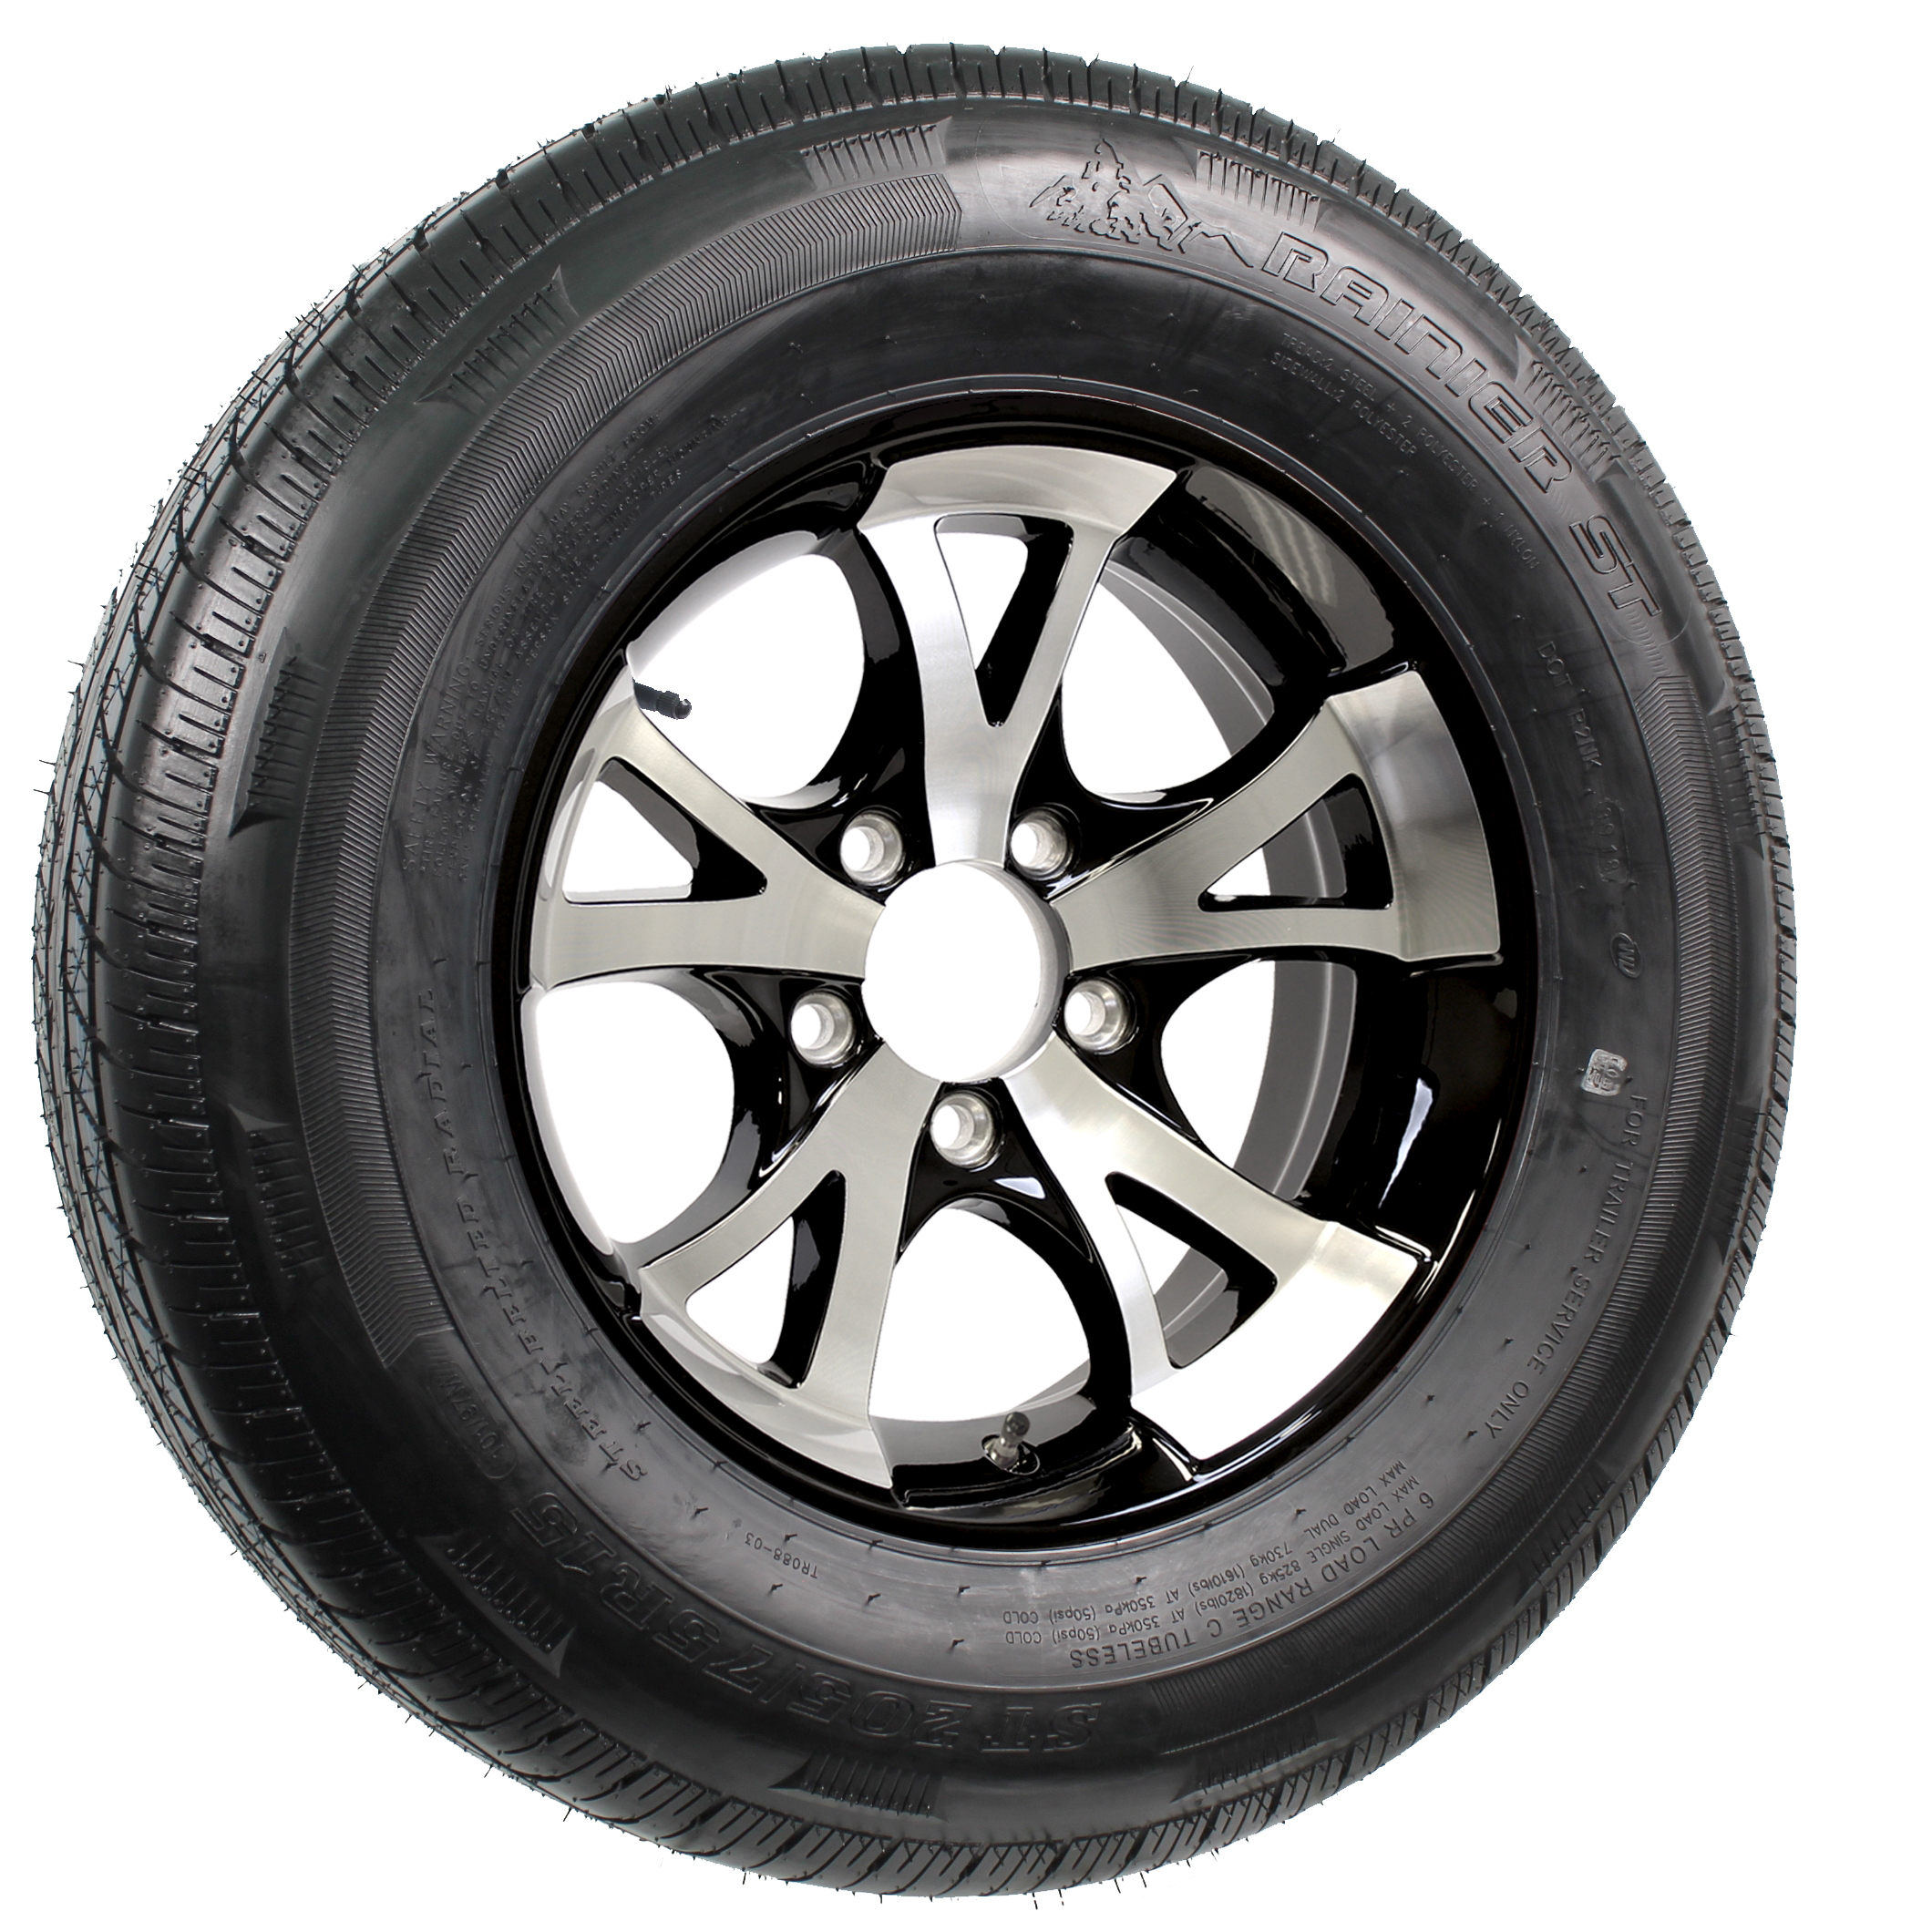 "Rainier ST205/75R15 LRD Radial Tire on 15"" 5-Lug A1411 Black Aluminum Assembly Image"